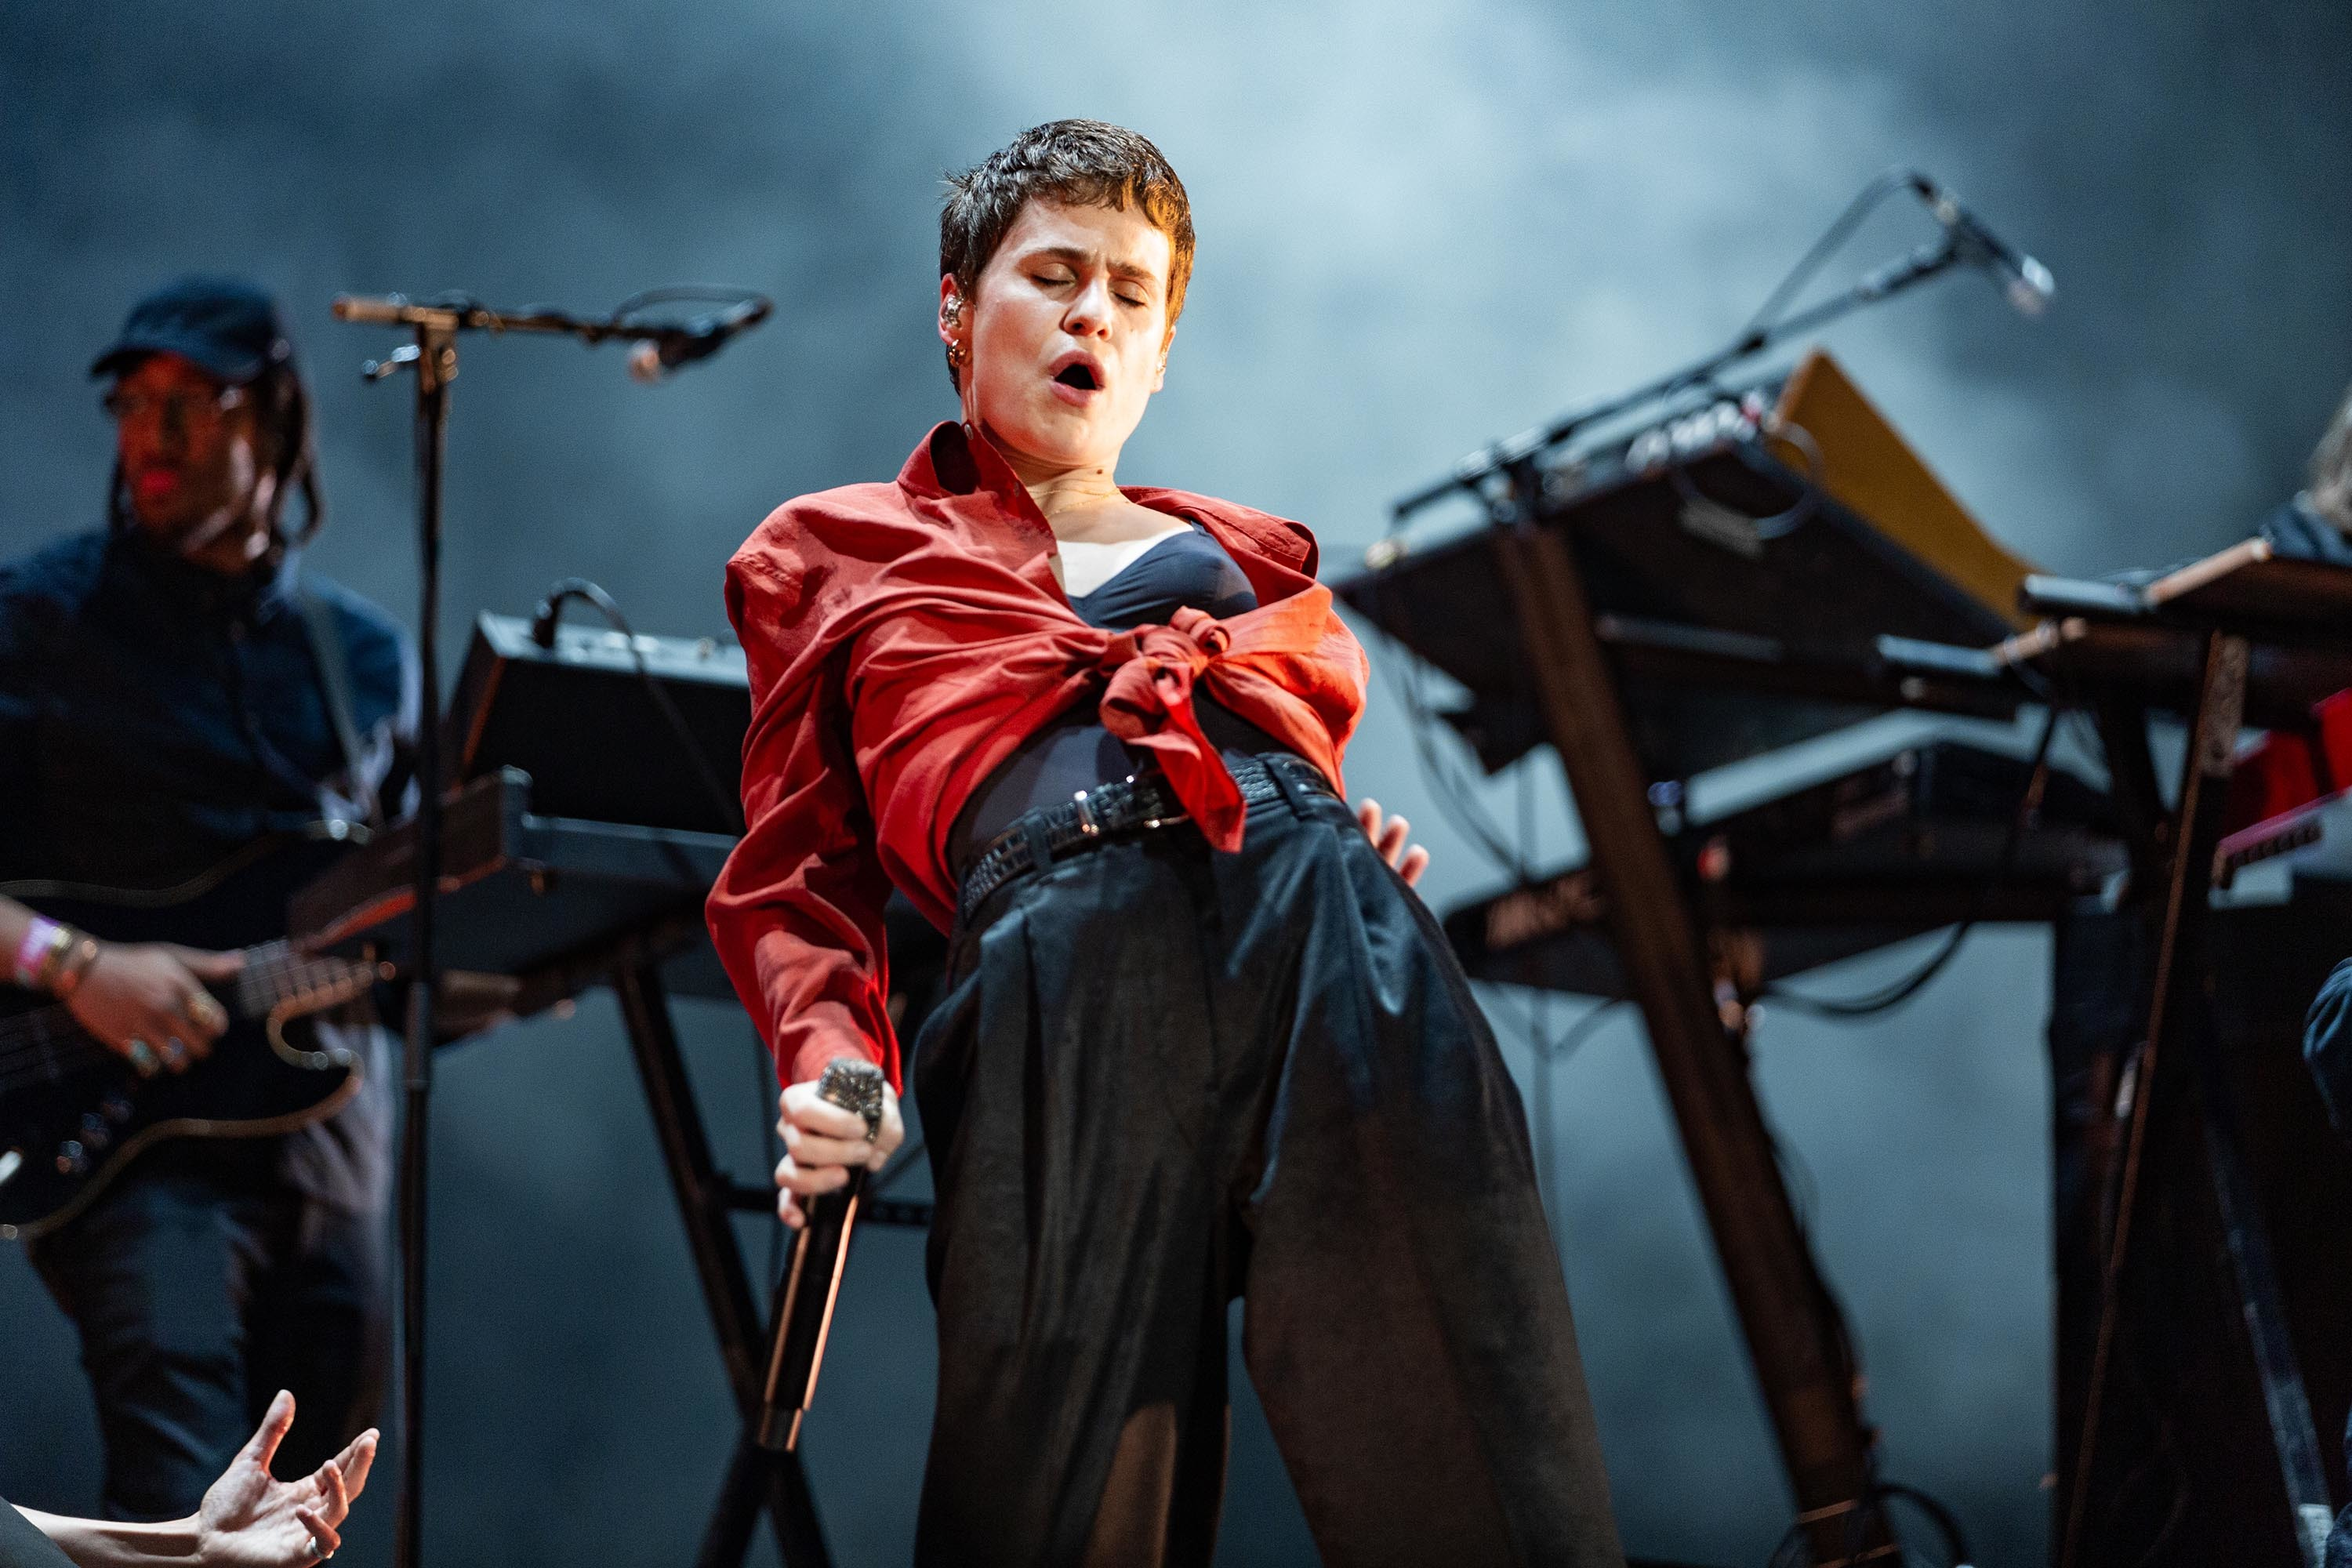 Christine and the Queens battles the elements in style at All Points East